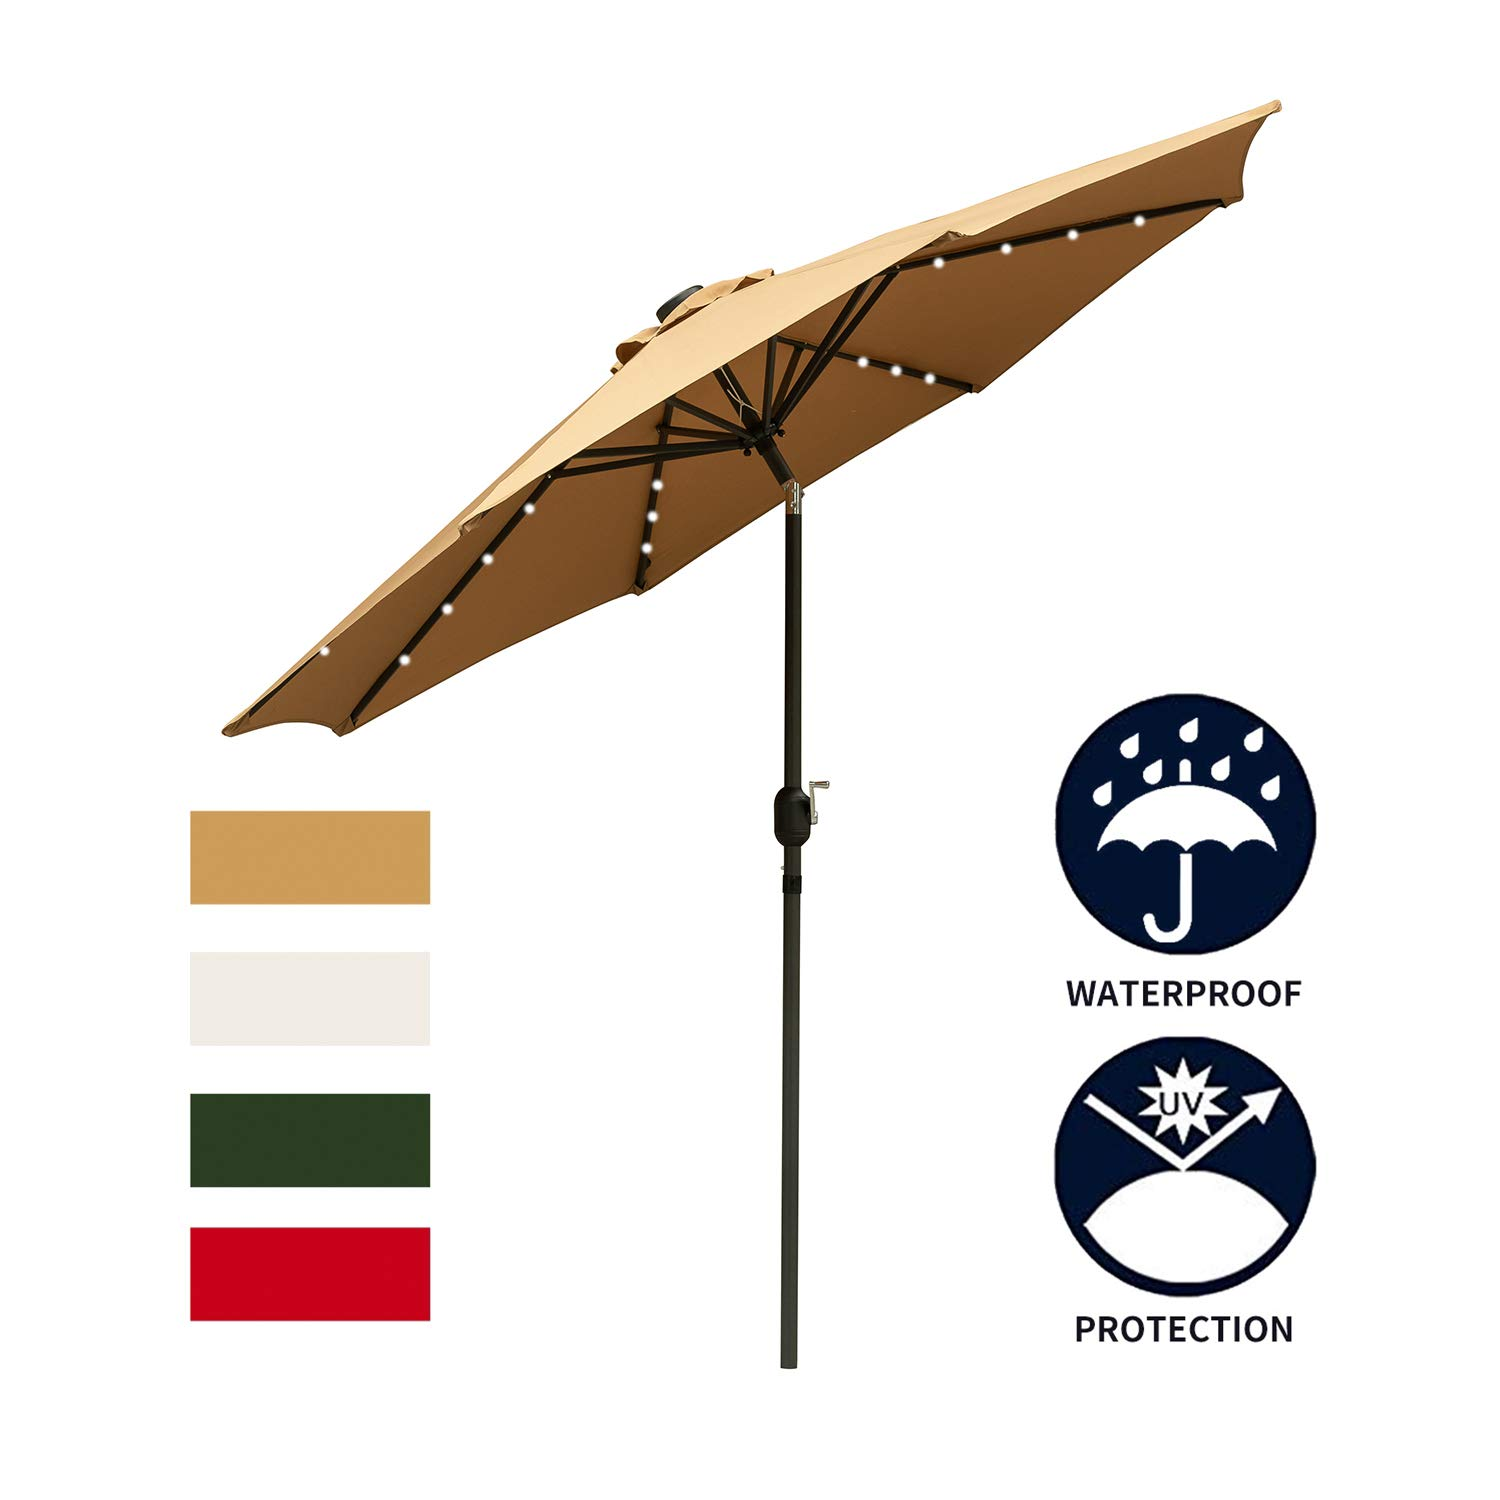 Ainfox 9ft Solar Patio Umbrella with LED Light, Steel Umbrella Ribs Waterproof Prevent Bask in for Garden, Indoor, Outdoor Use Without Base (Brown) by Ainfox